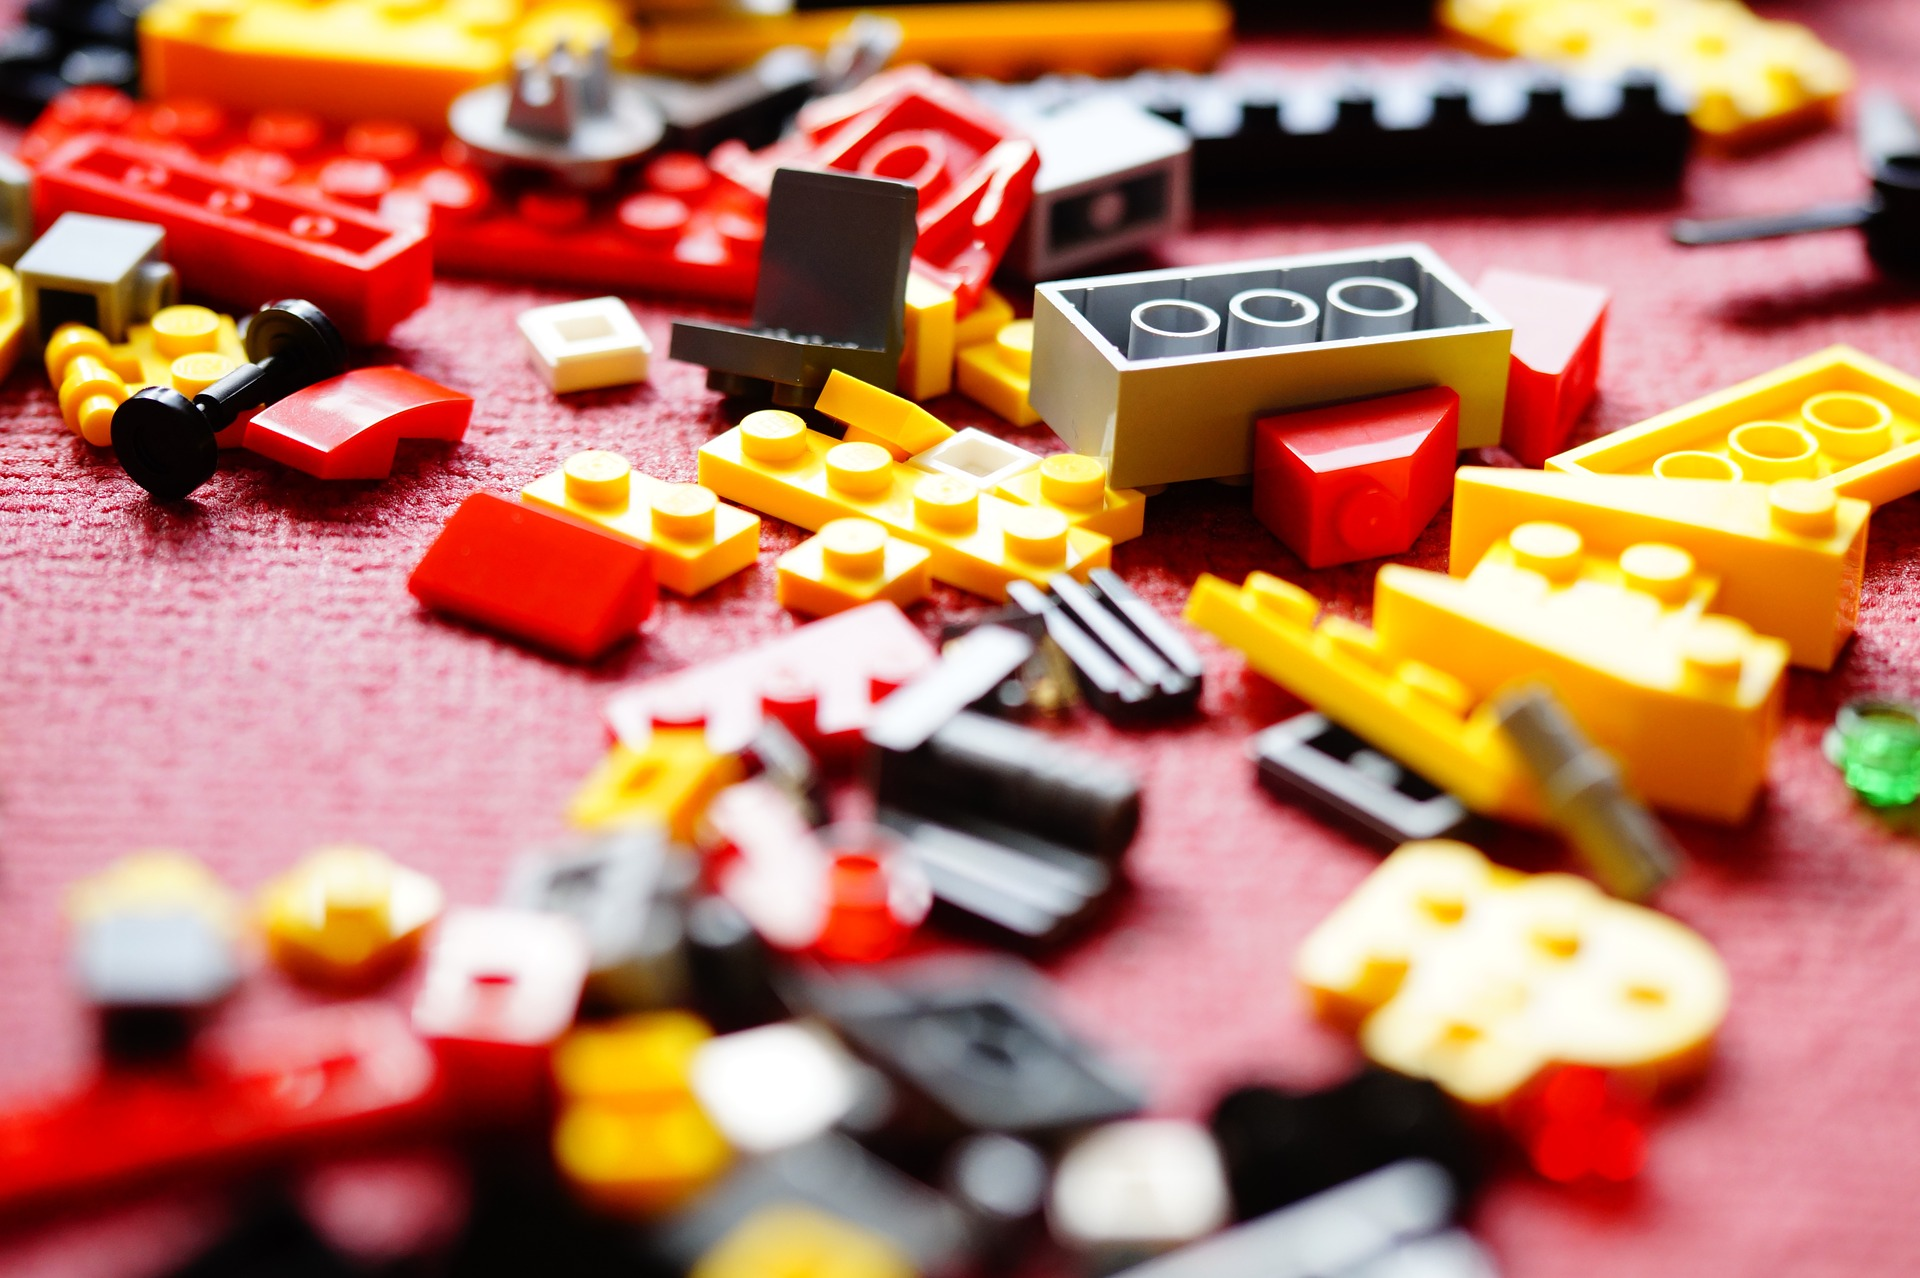 messy lego on the floor